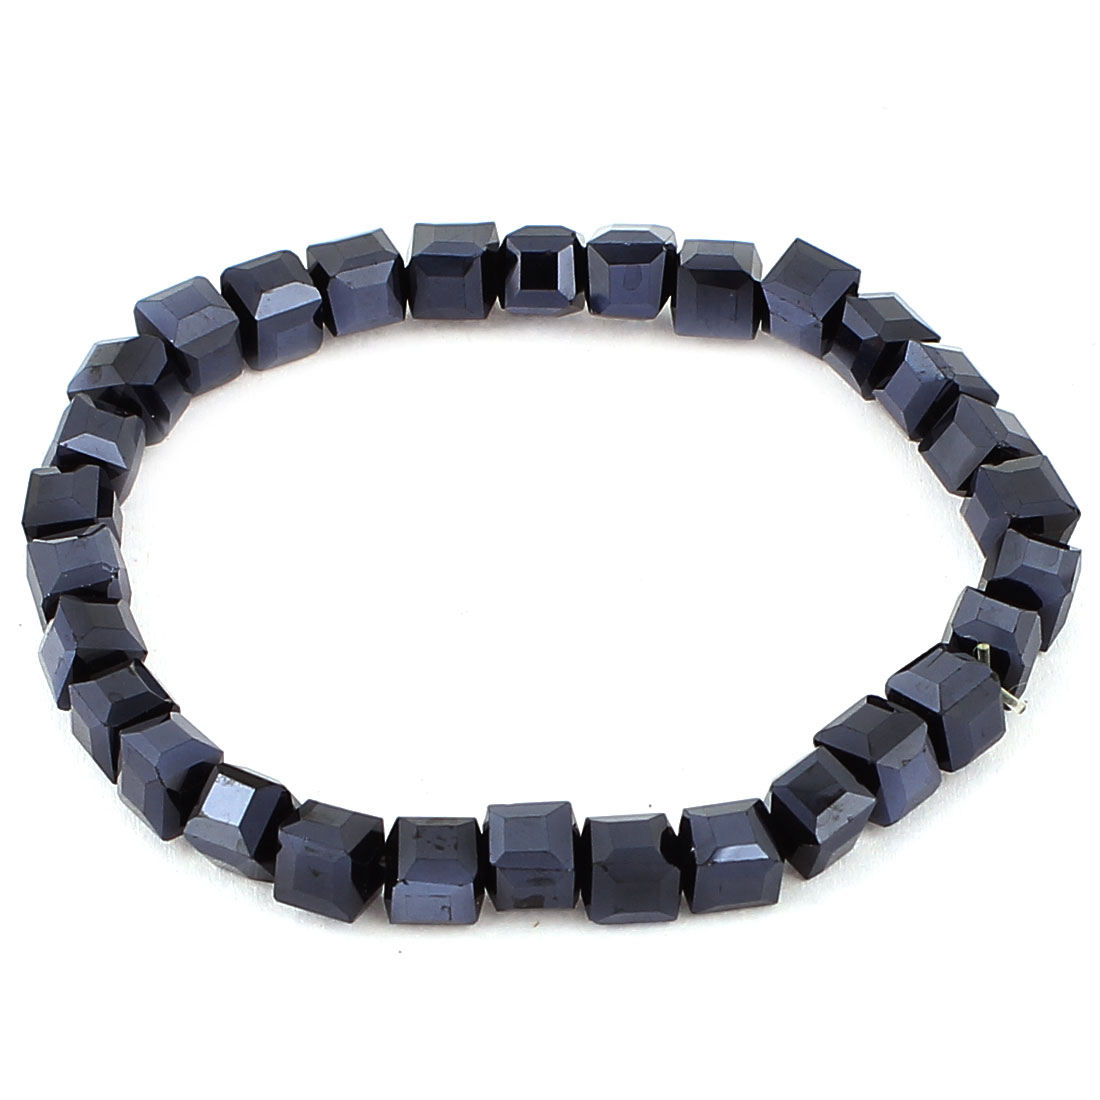 Women Plastic Multilateral Beads Linked Bracelet Bangle Oranment Black